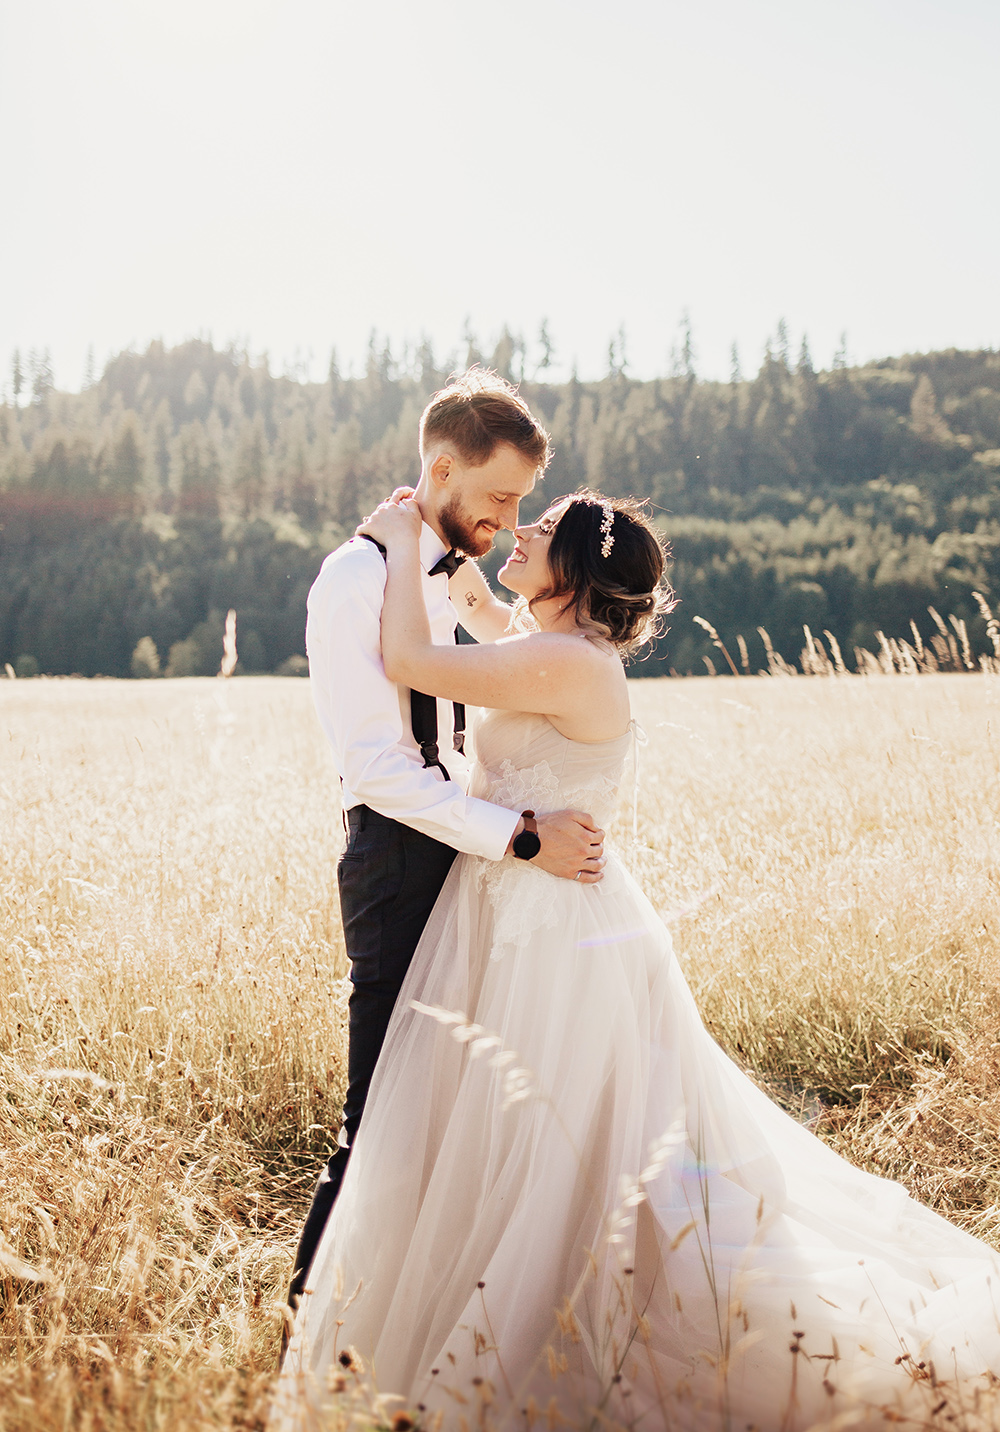 A Stunning Summer Elopement In The Countryside